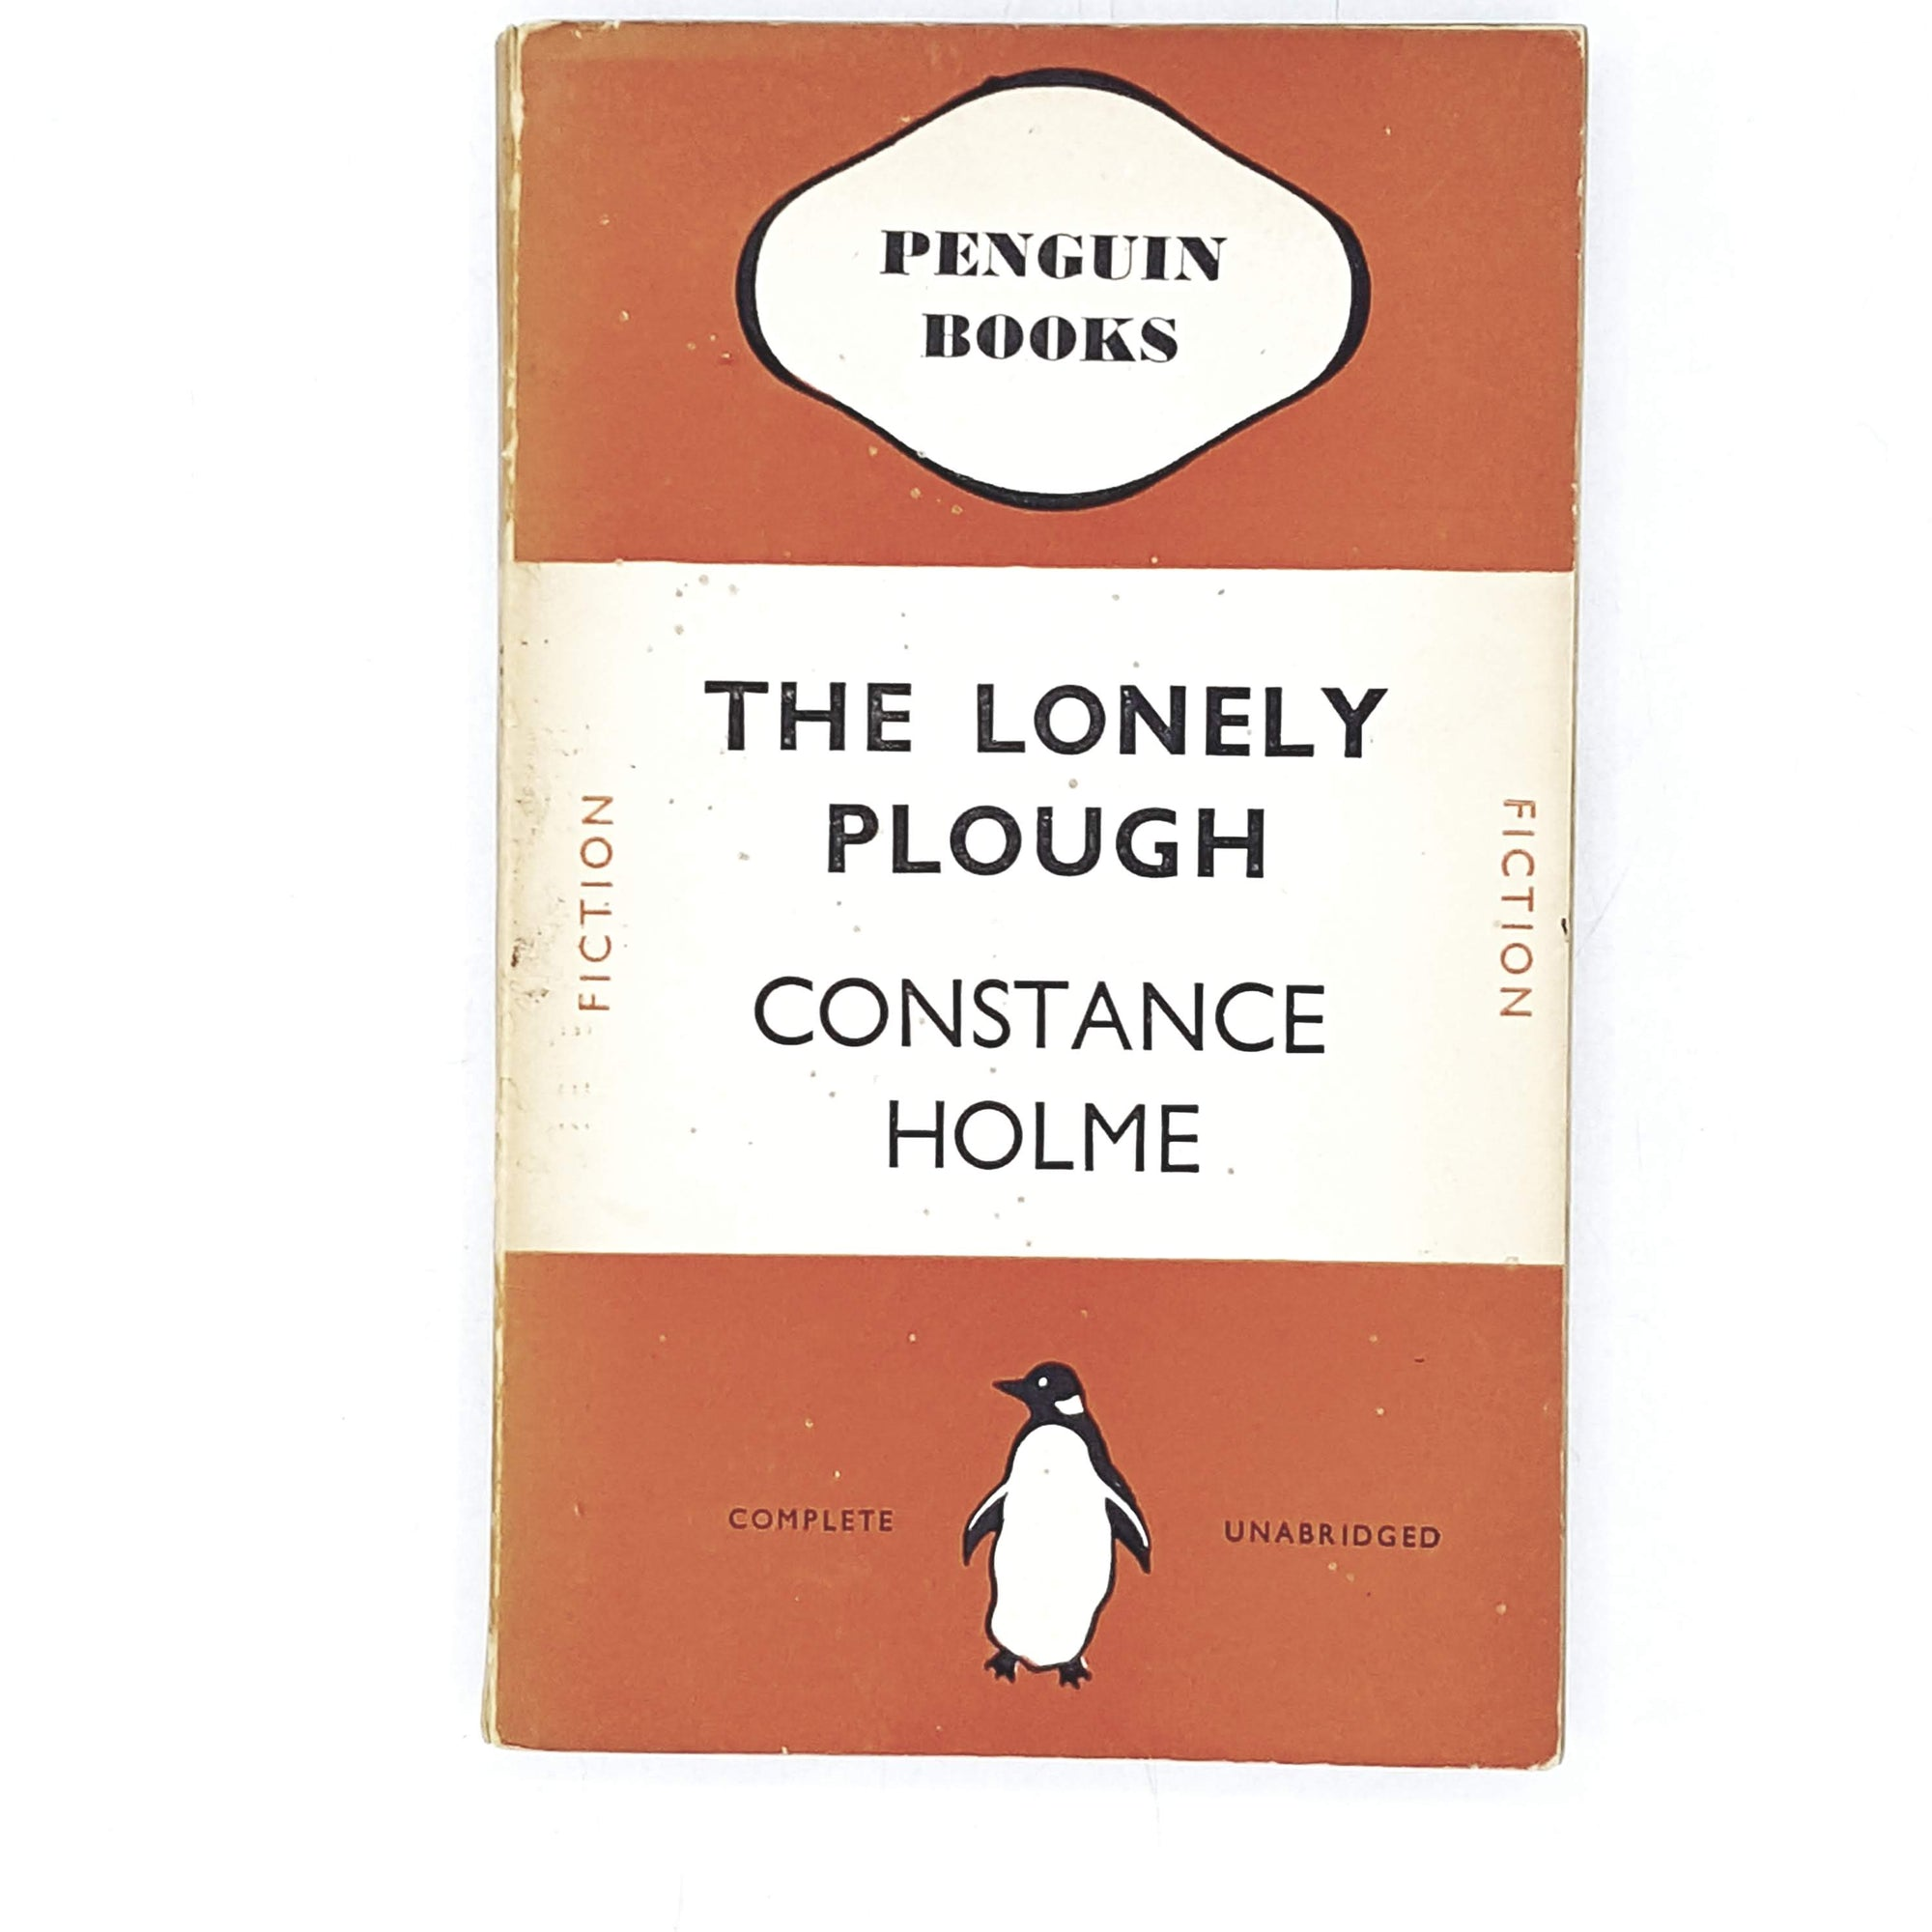 Vintage Penguin The Lonely Plough by Constance Holme 1937